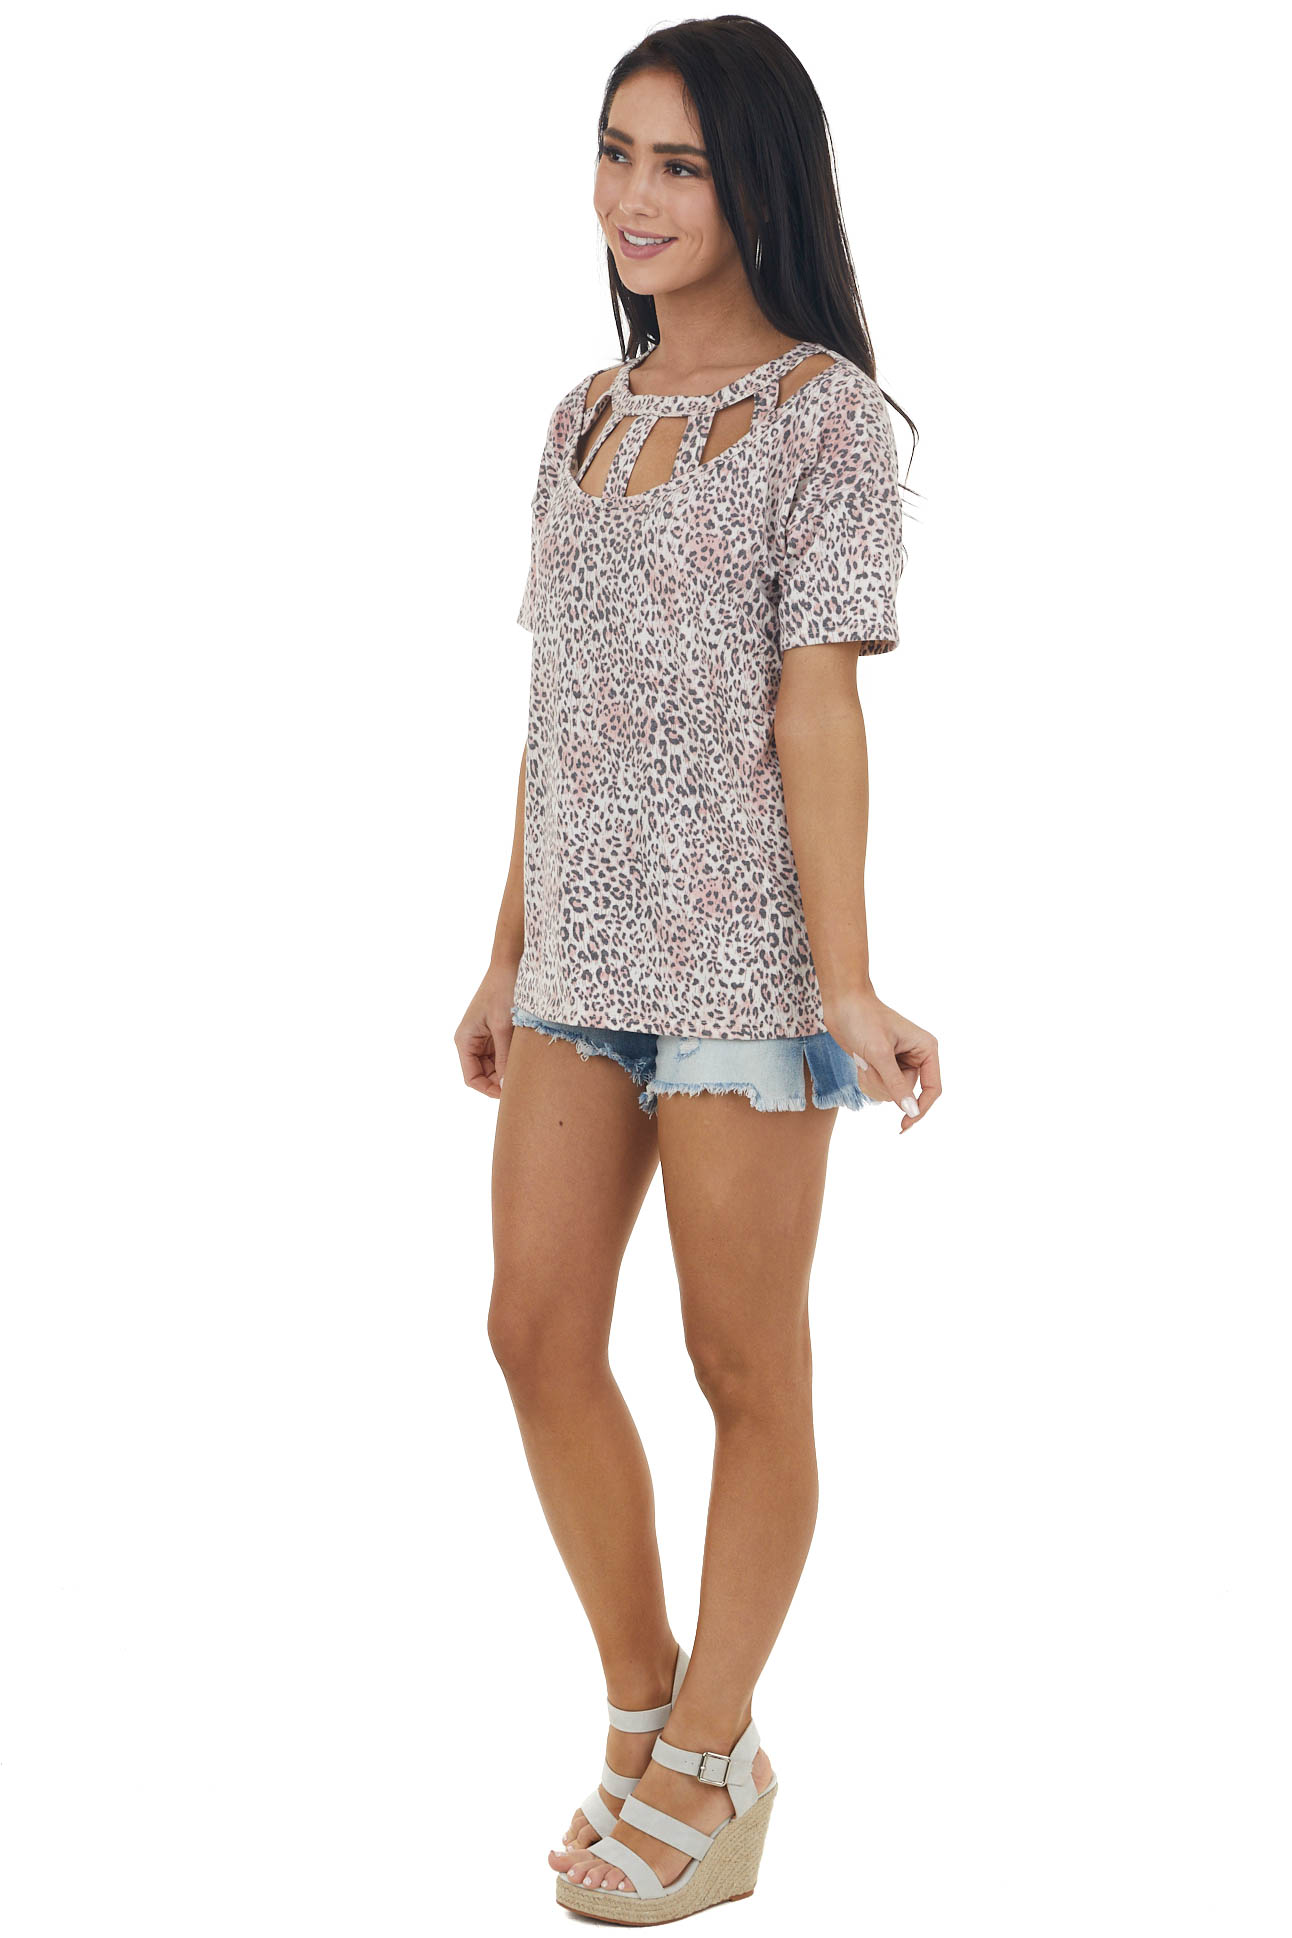 Blush Leopard Short Sleeve Knit Top with Caged Neckline